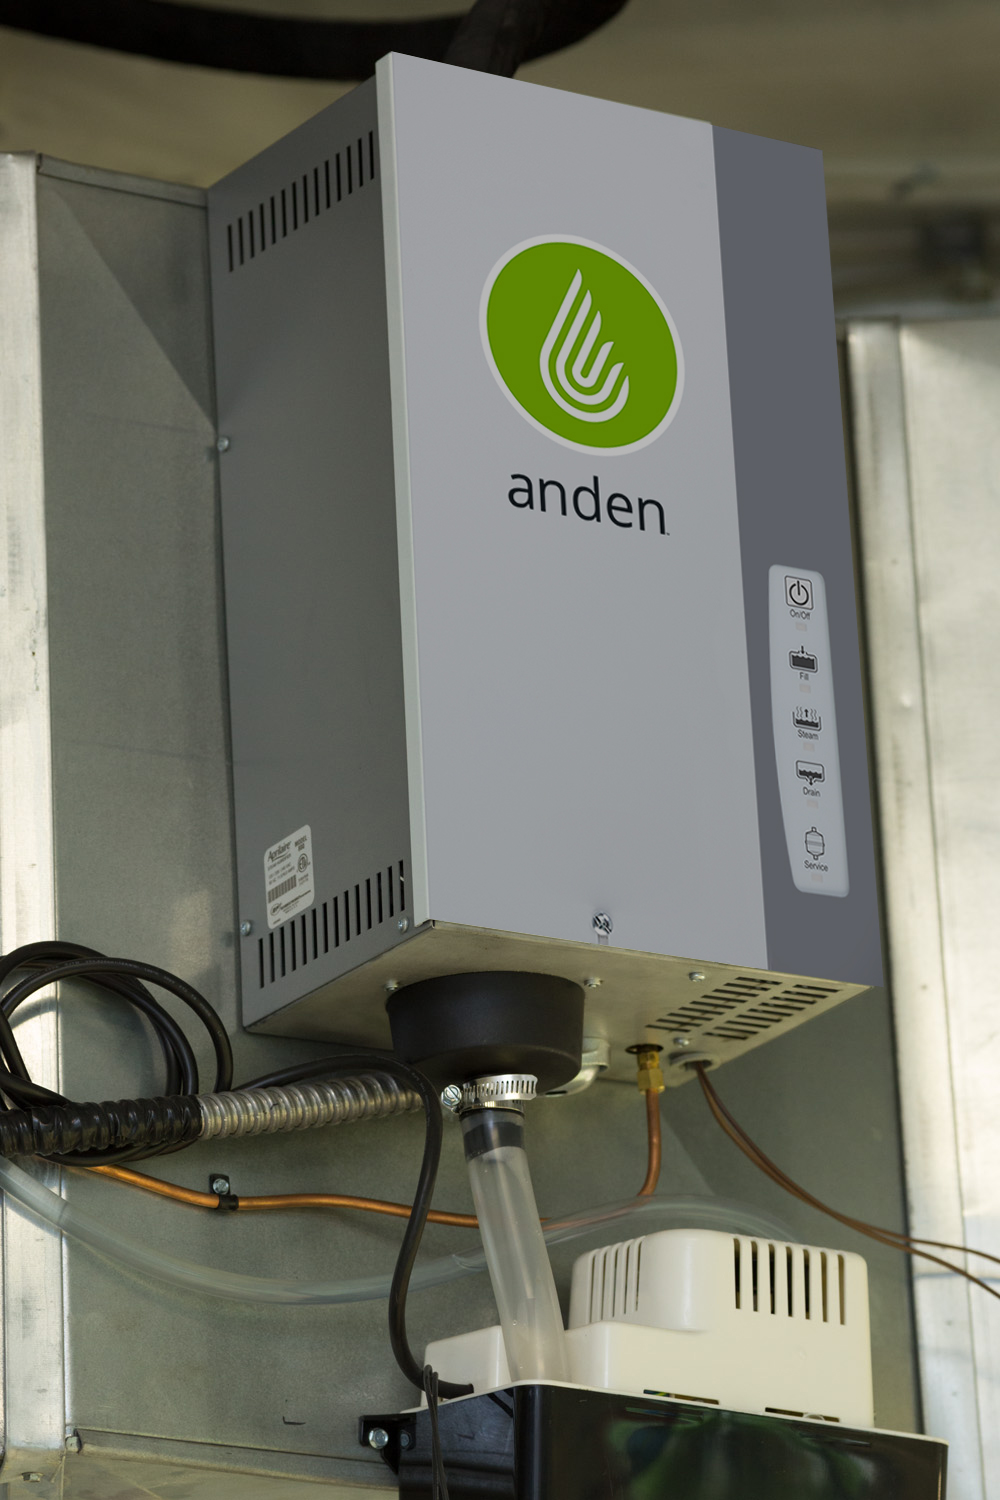 Anden-AS35FP-Model-Steam Humidifier